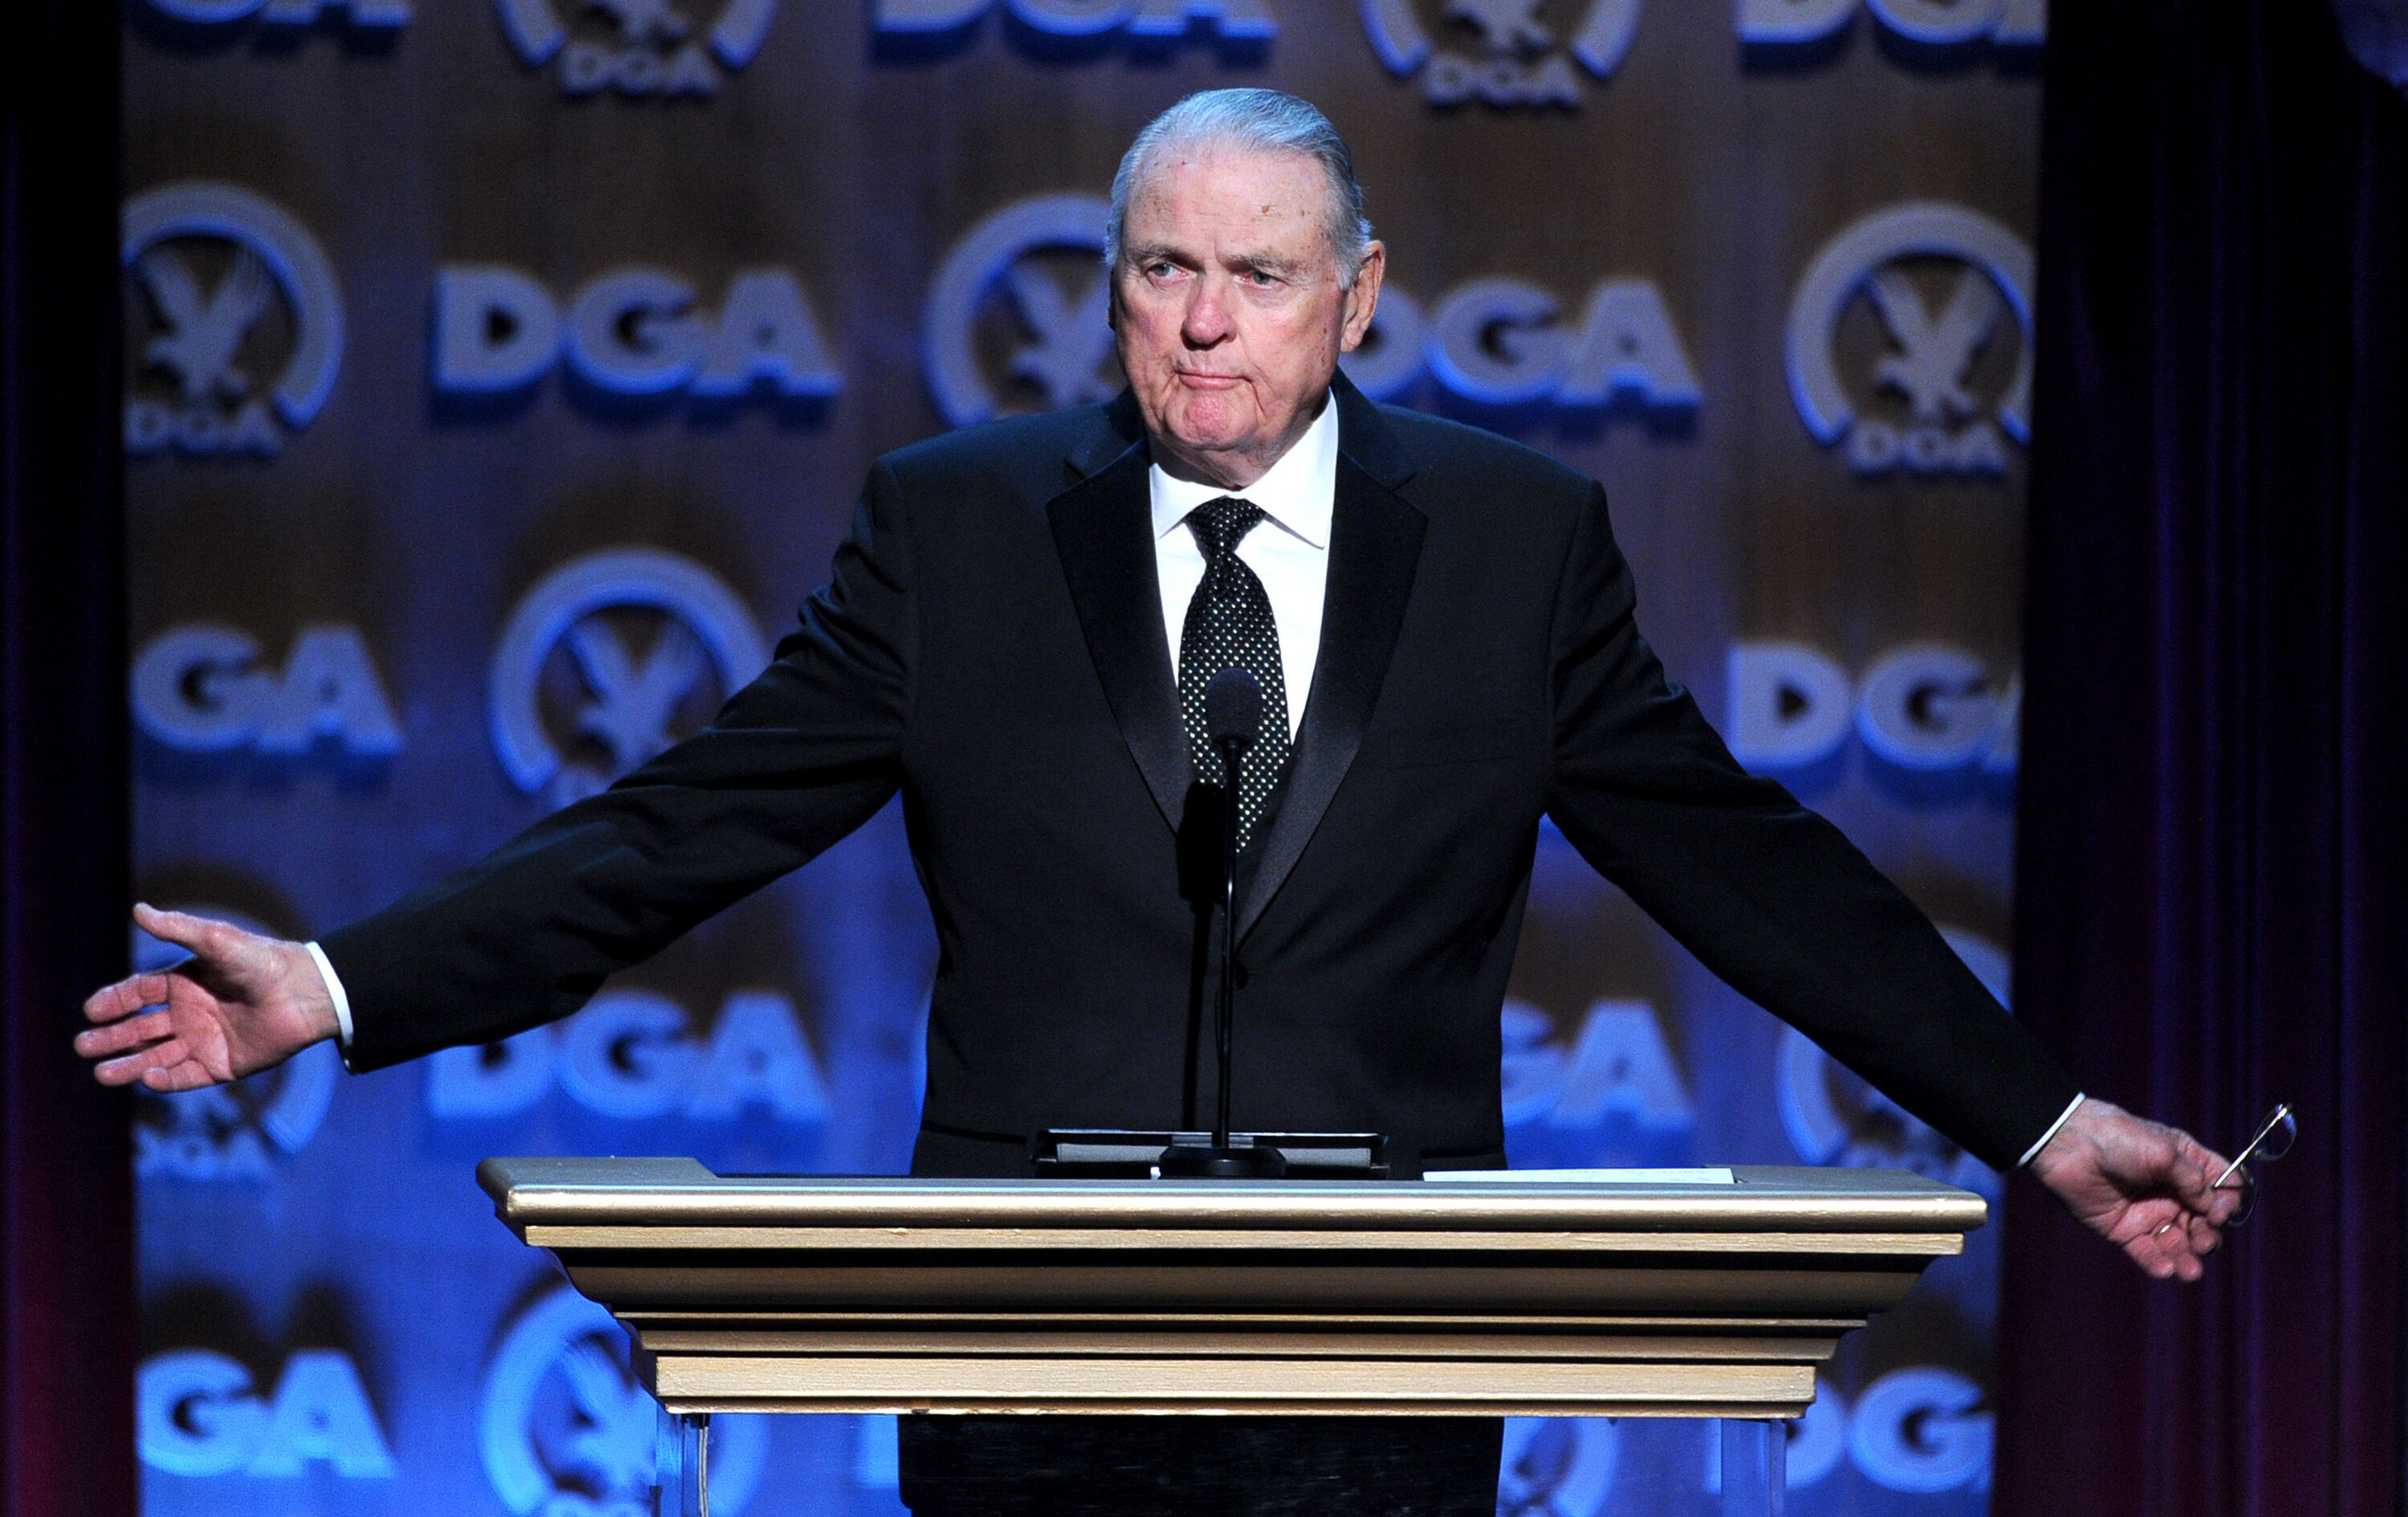 465091431-66th-annual-directors-guild-of-america-awards-show.jpg